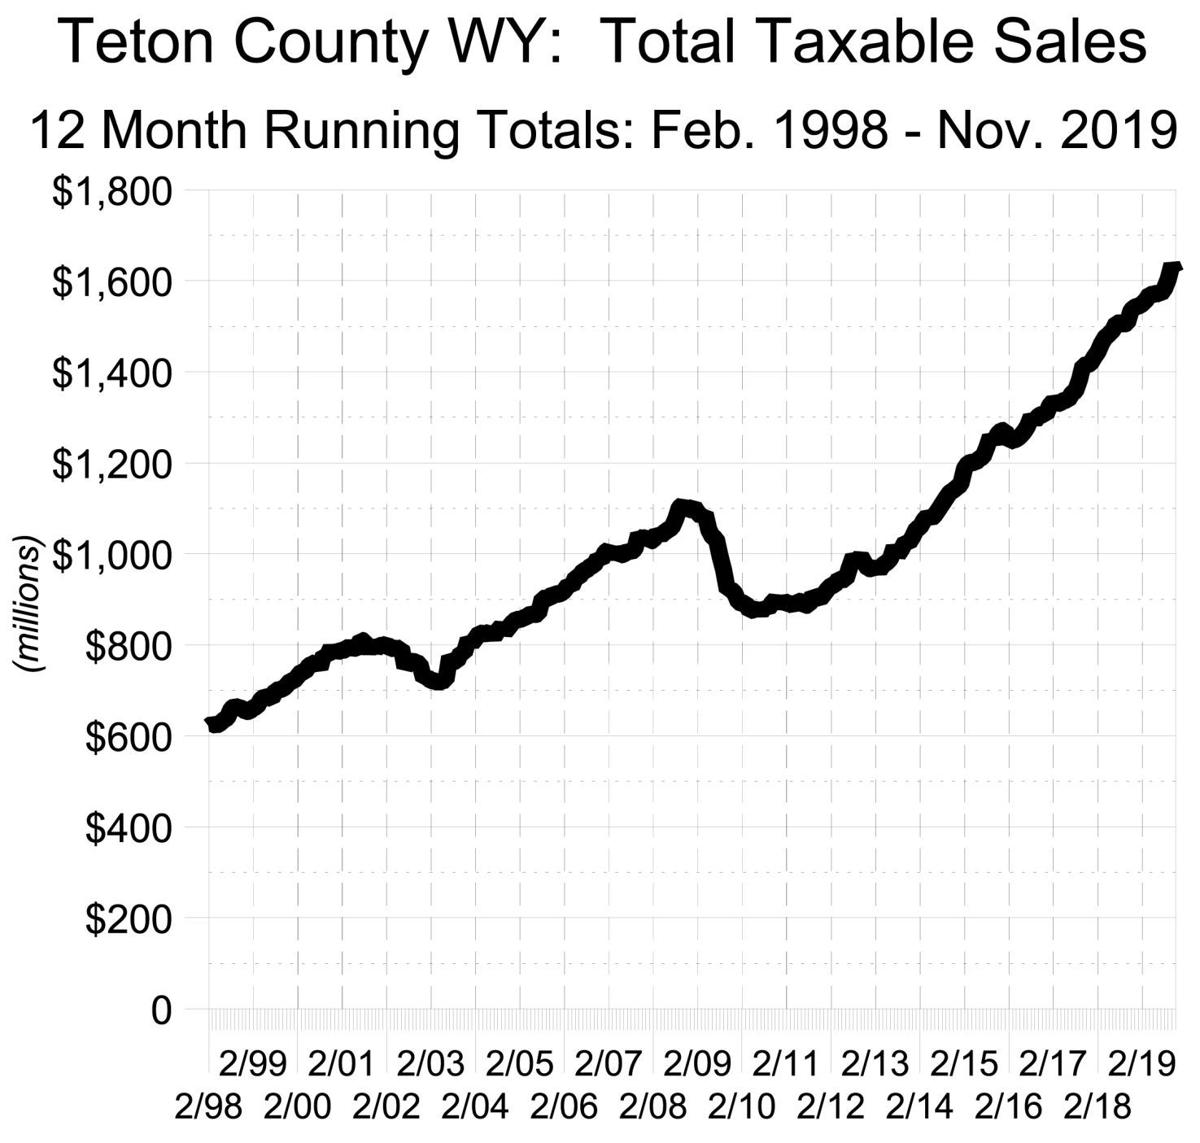 Teton County WY: Total Taxable Sales